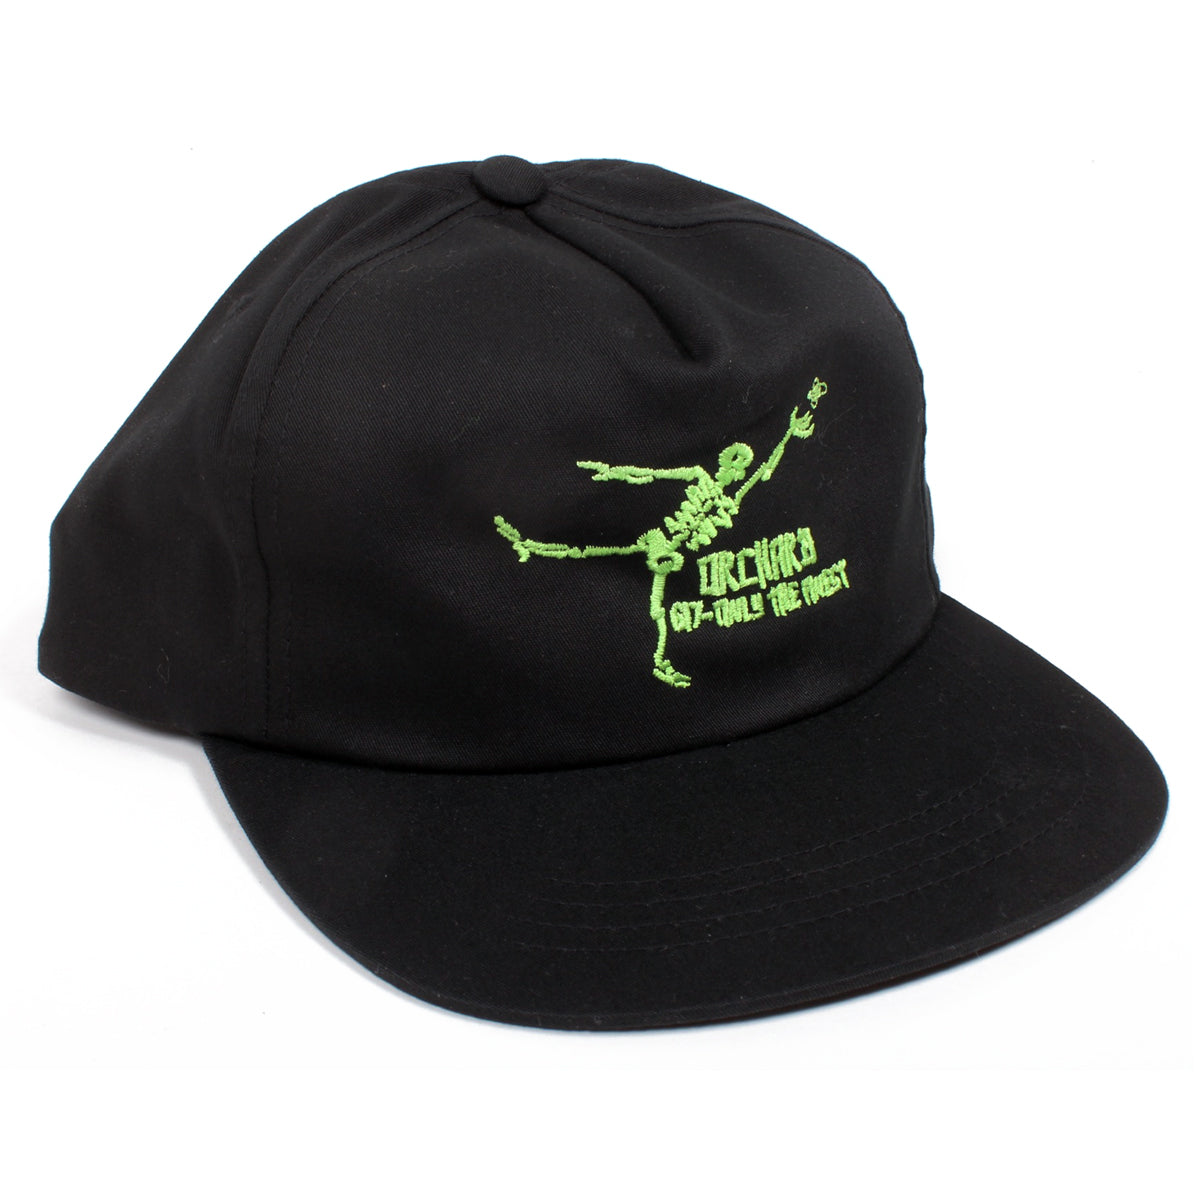 Orchard Unstructured Snapback Hat Gonz Only The Finest Black